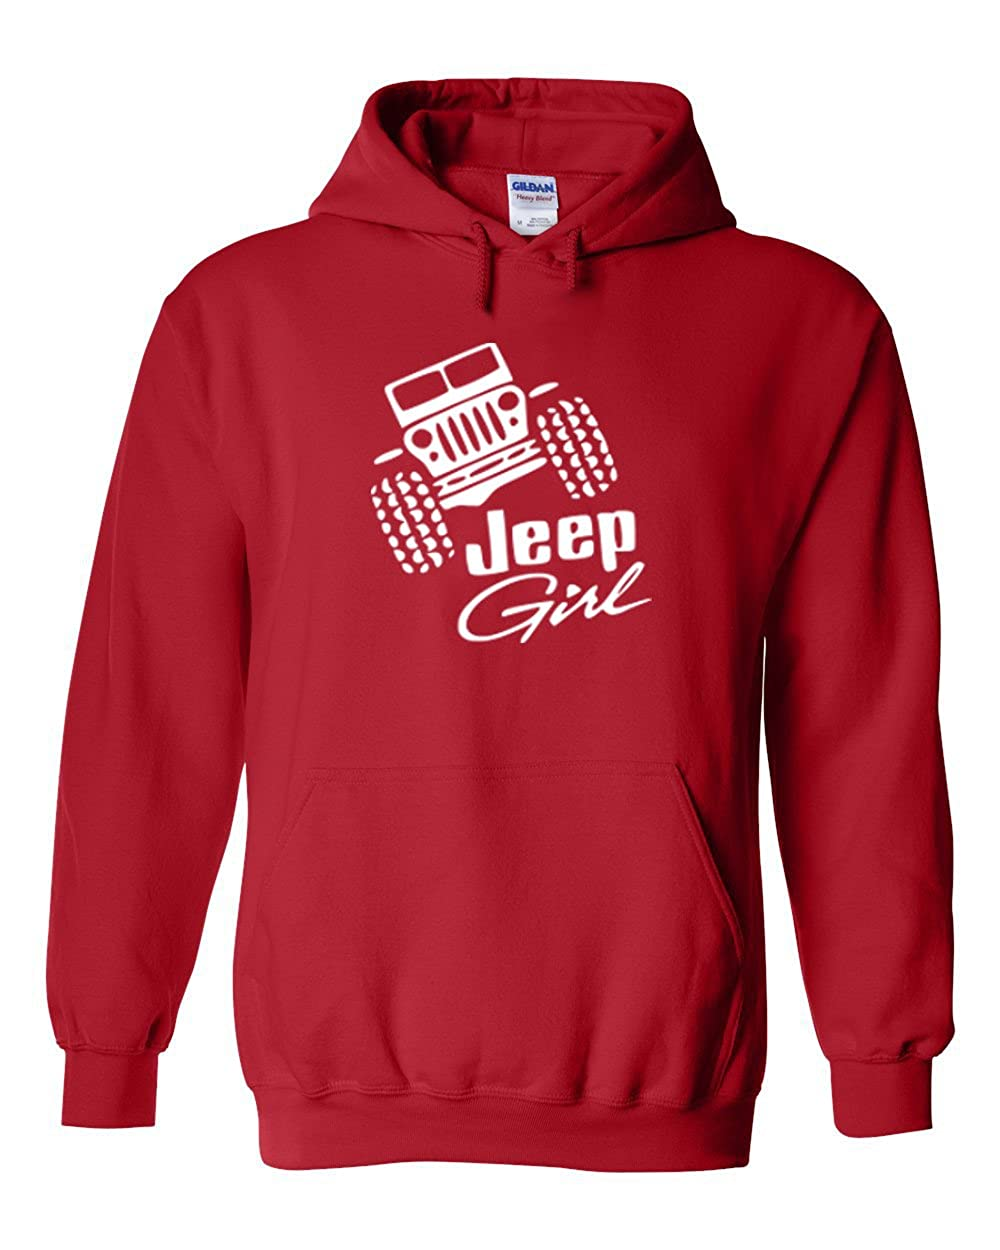 Jeep Girl Hoodie | Classic Off Road Fan Girl Hooded Sweatshirt | Womens